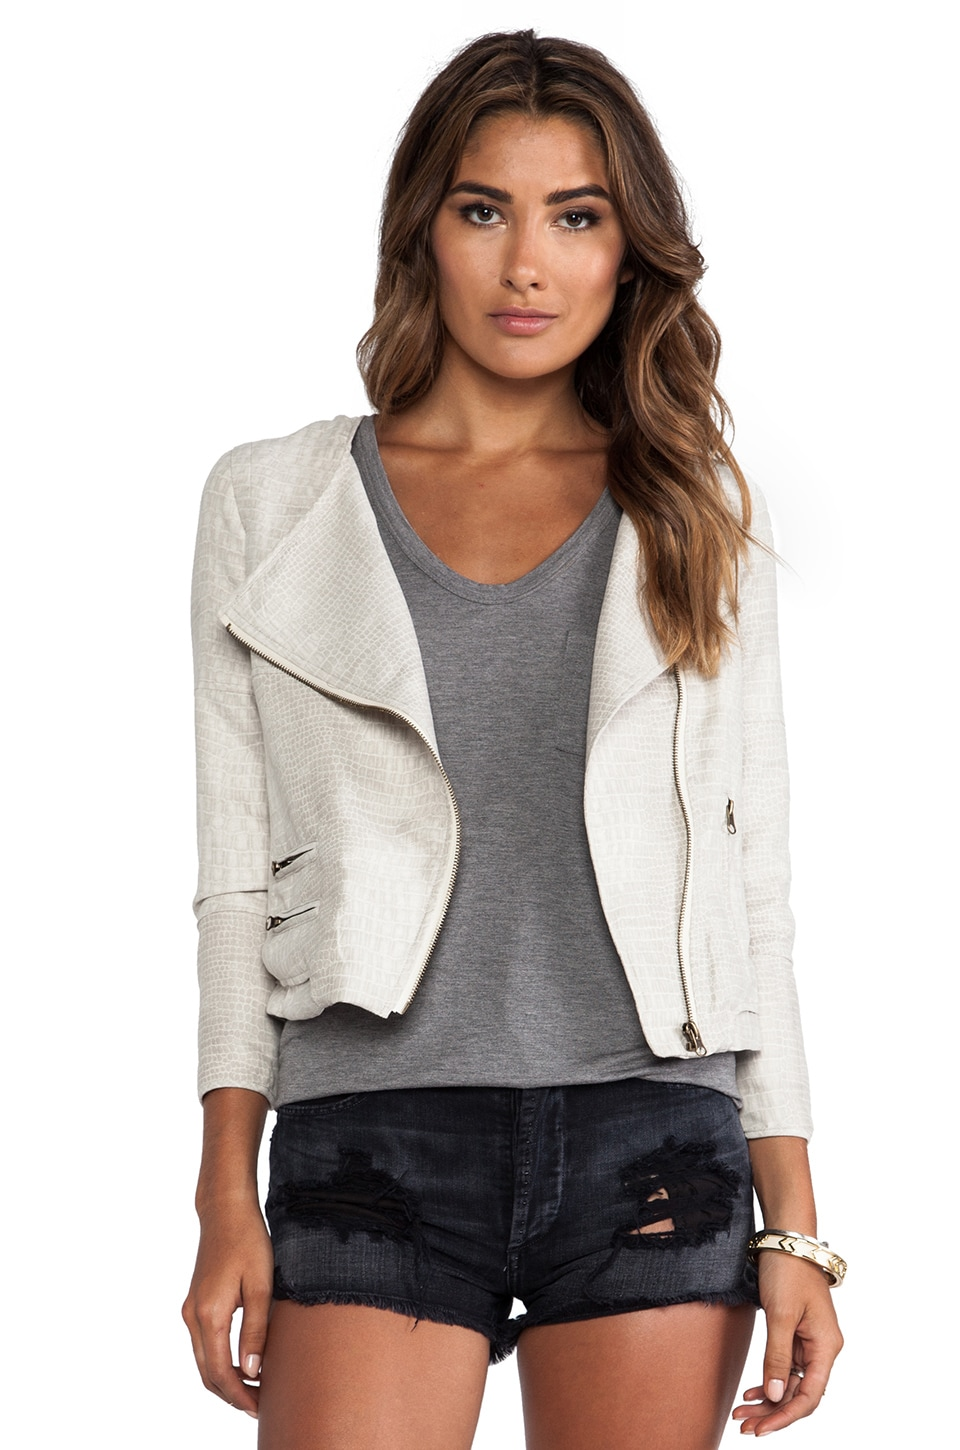 Capulet Collarless Moto Jacket in Cream Jacquard